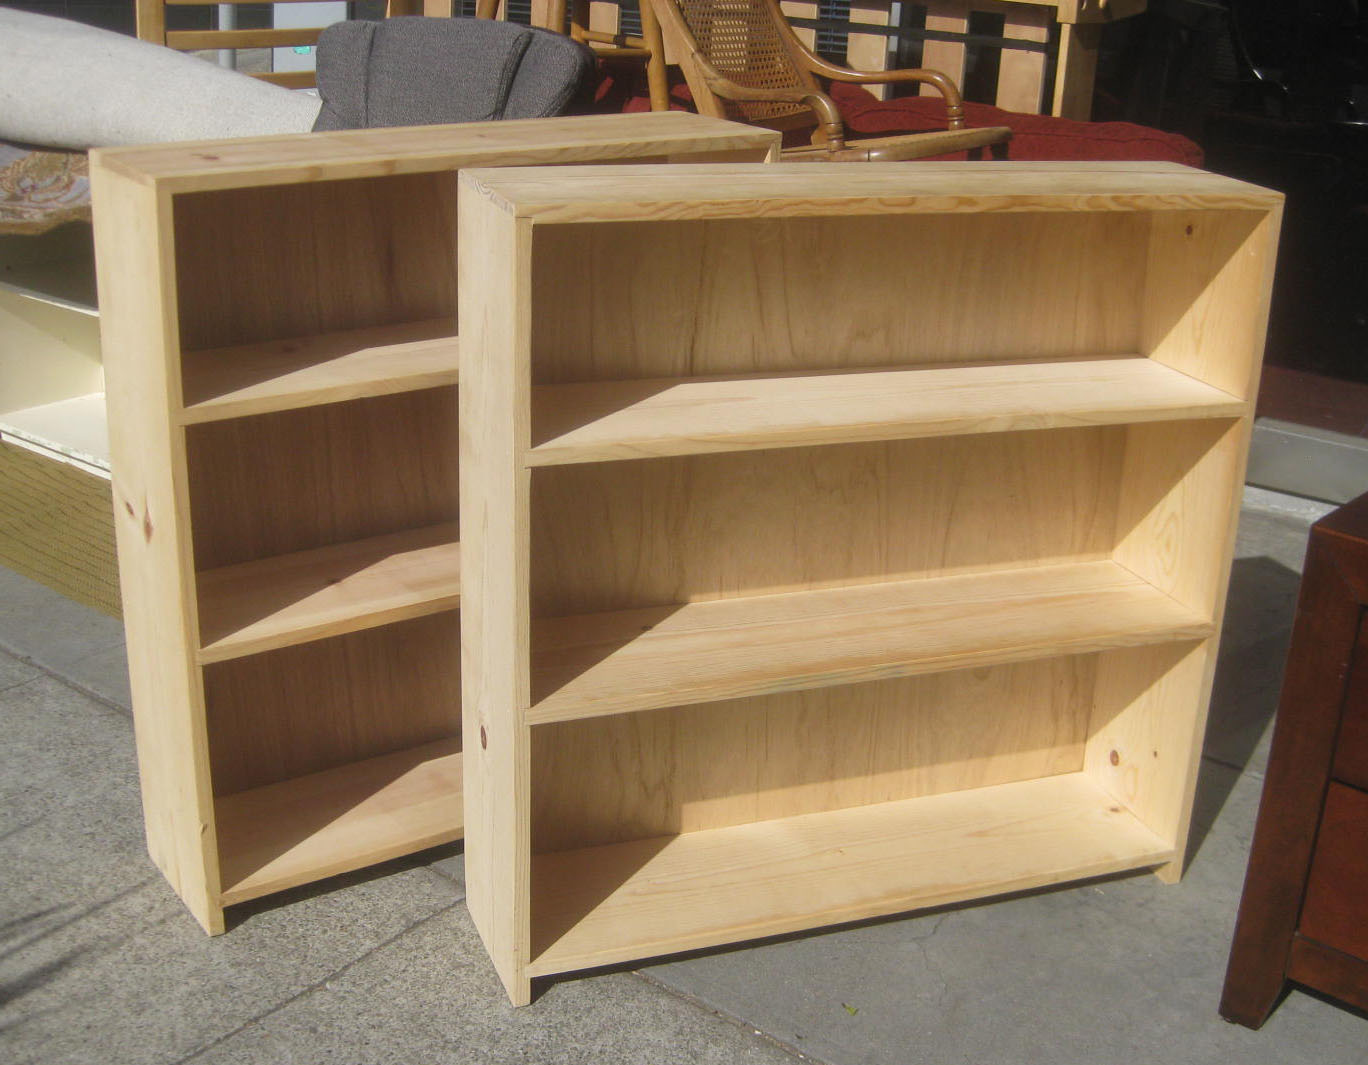 uhuru furniture   collectibles sold unfinished pine Unfinished Wood Bookcases Unfinished Pine Cabinets